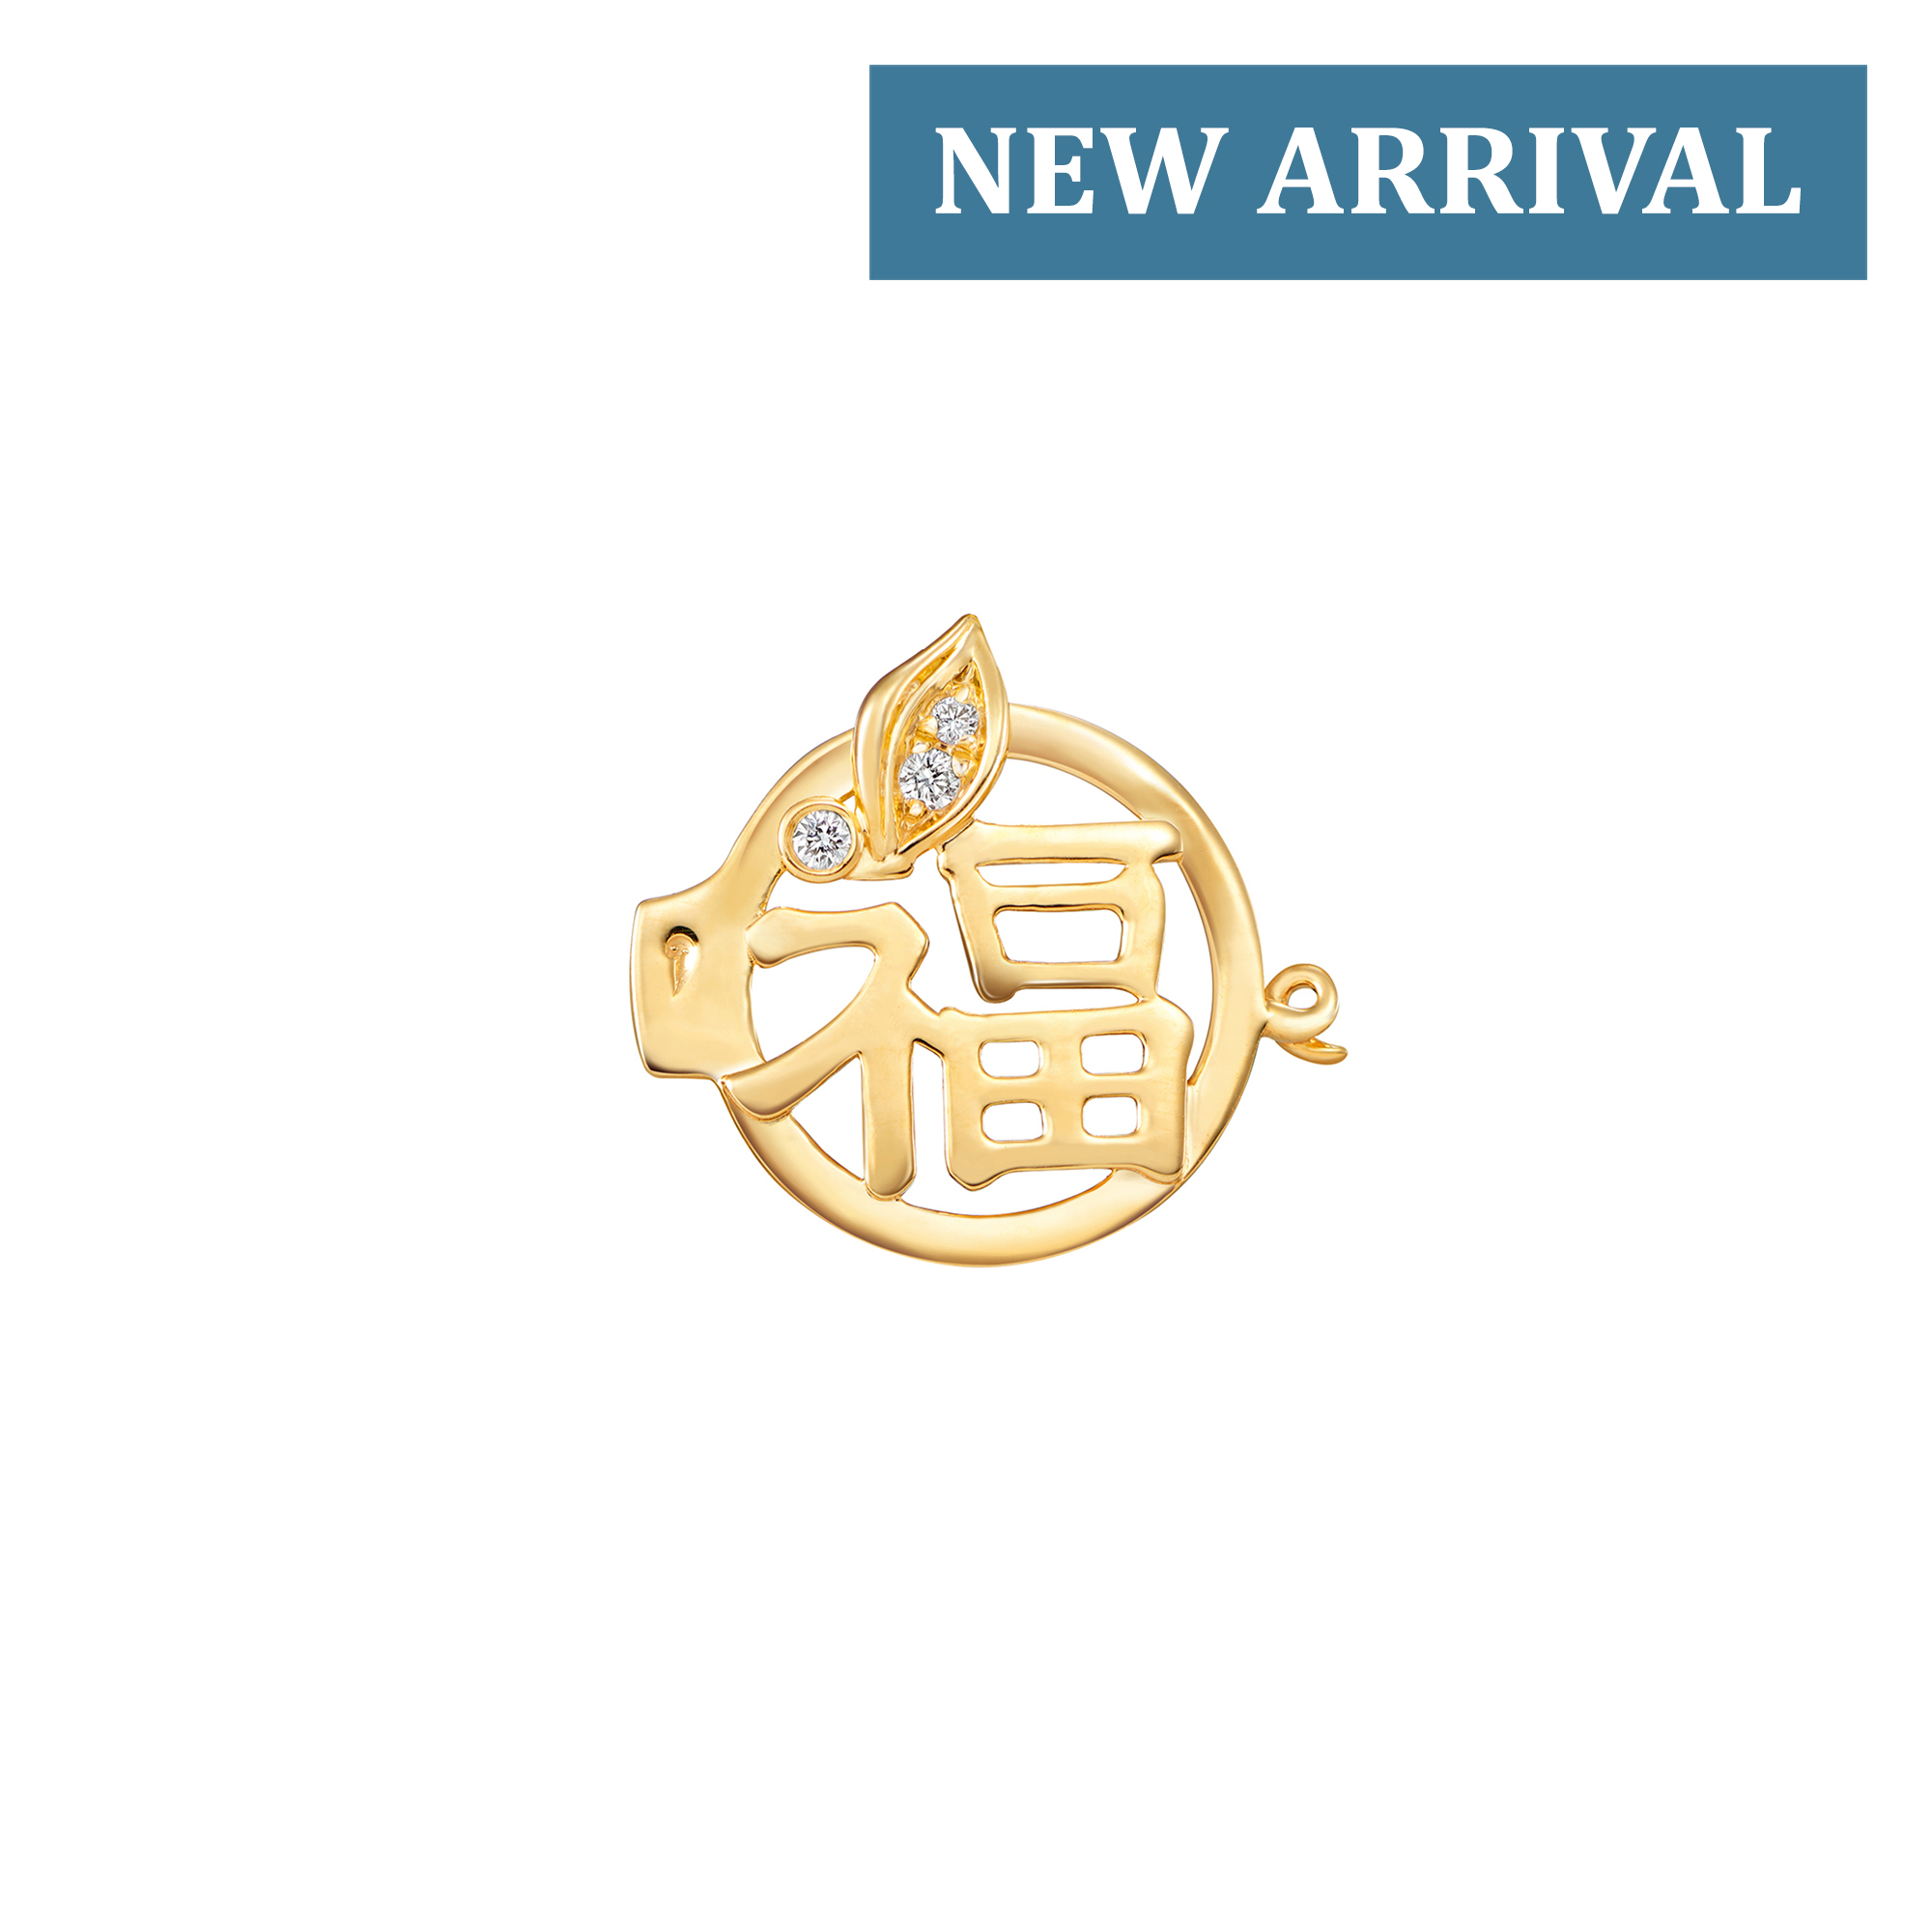 Golden Fuk Sow Diamond Pendant - CNY2019 - new